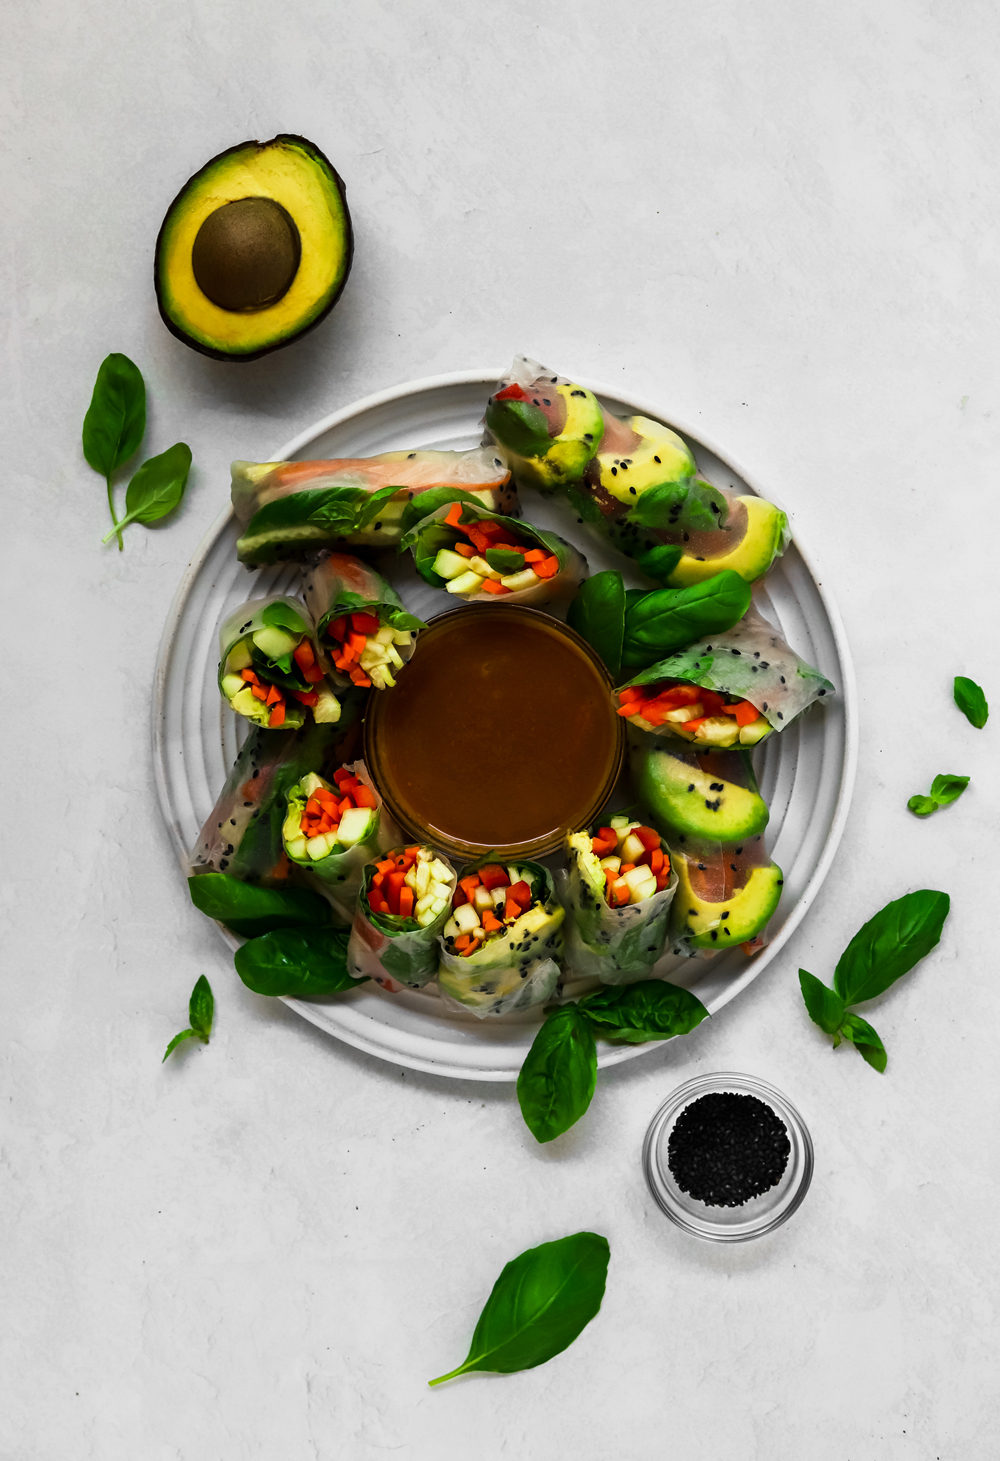 Vegan basil summer rolls and peanut sauce on a large white plate.